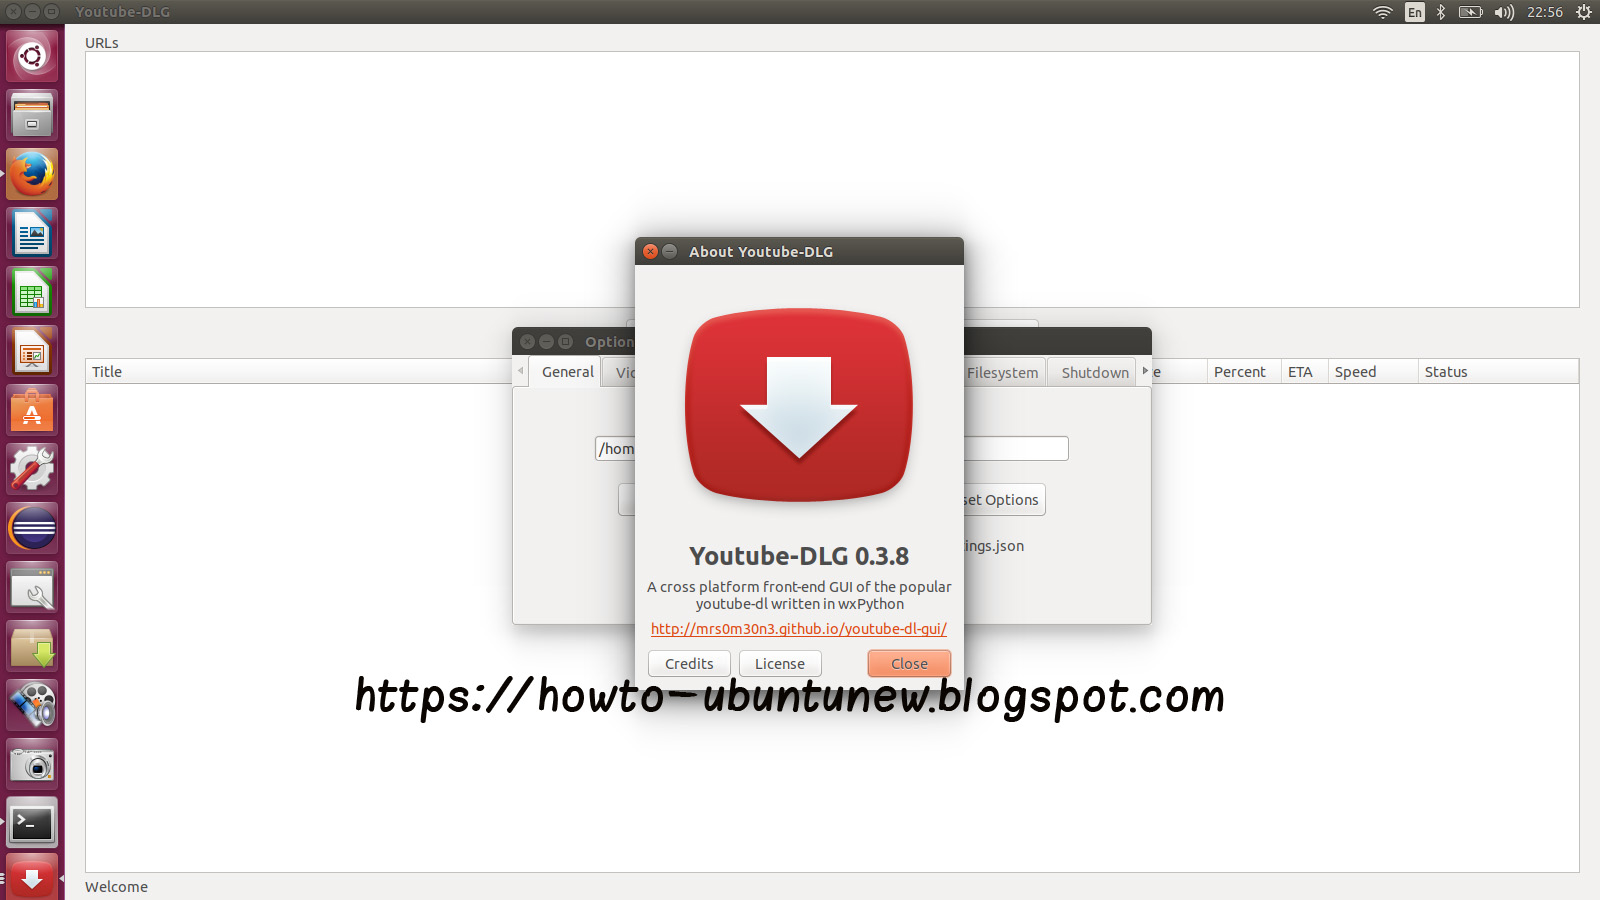 How to install program on Ubuntu: How to Install YouTube-DL GUI 0 3